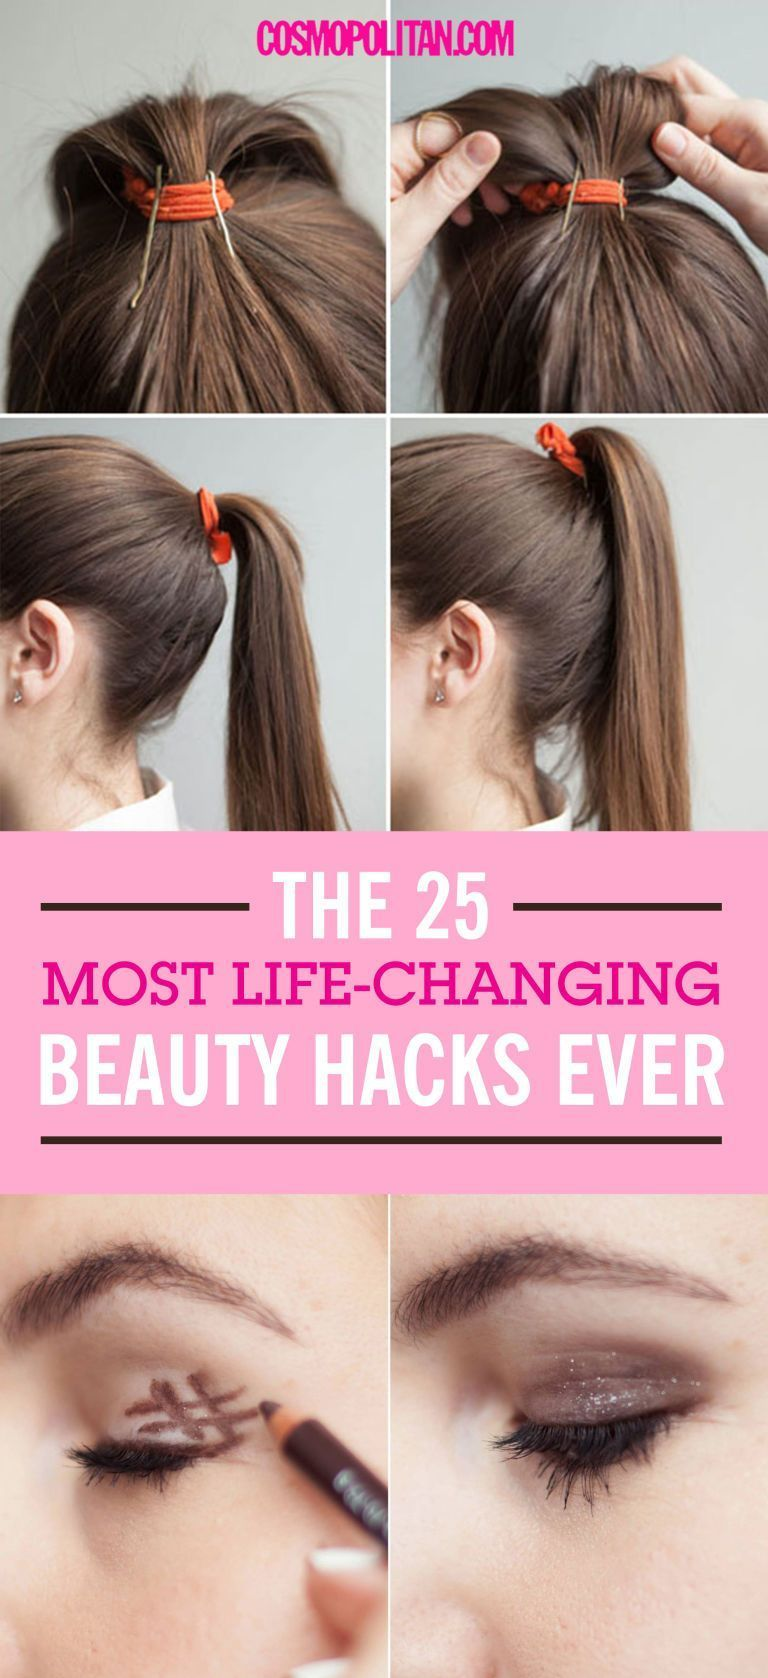 12 Awesome Health and Beauty Tips from Viral Posts #beautysecrets